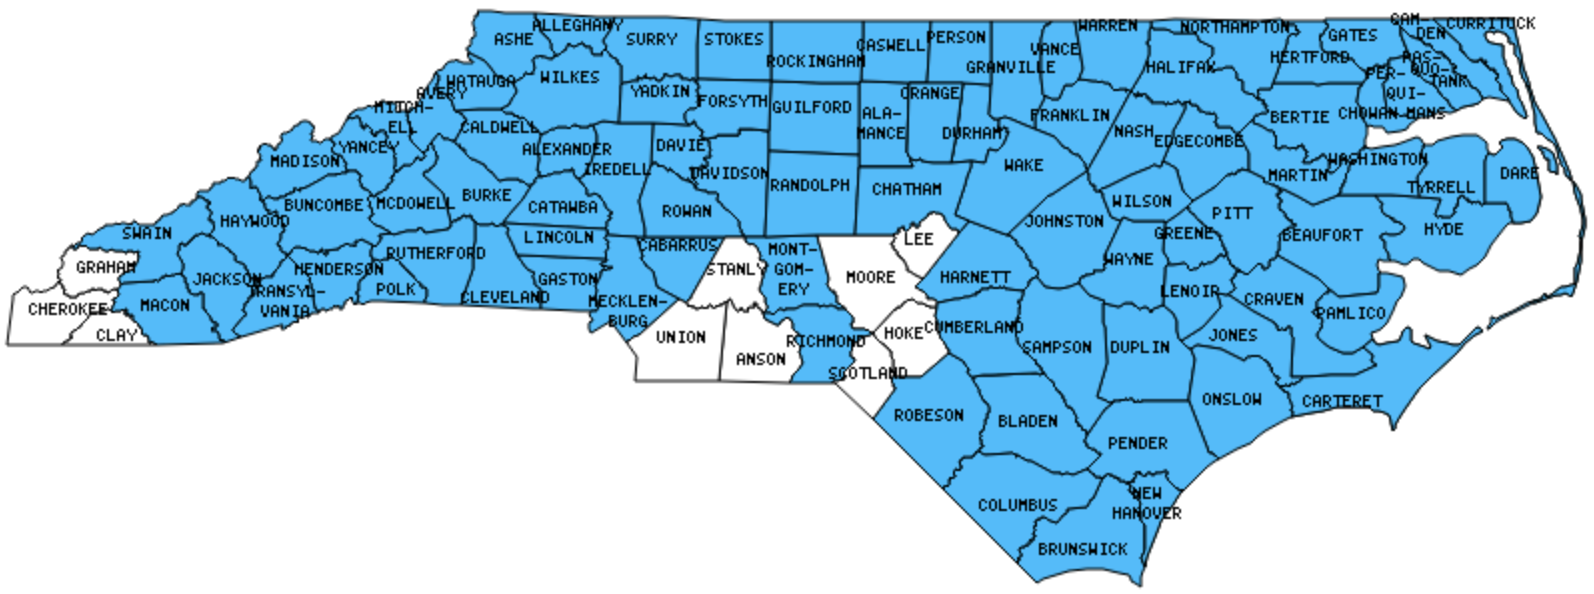 North Carolina Counties Visited With Map Highpoint Capitol And - Map of n carolina